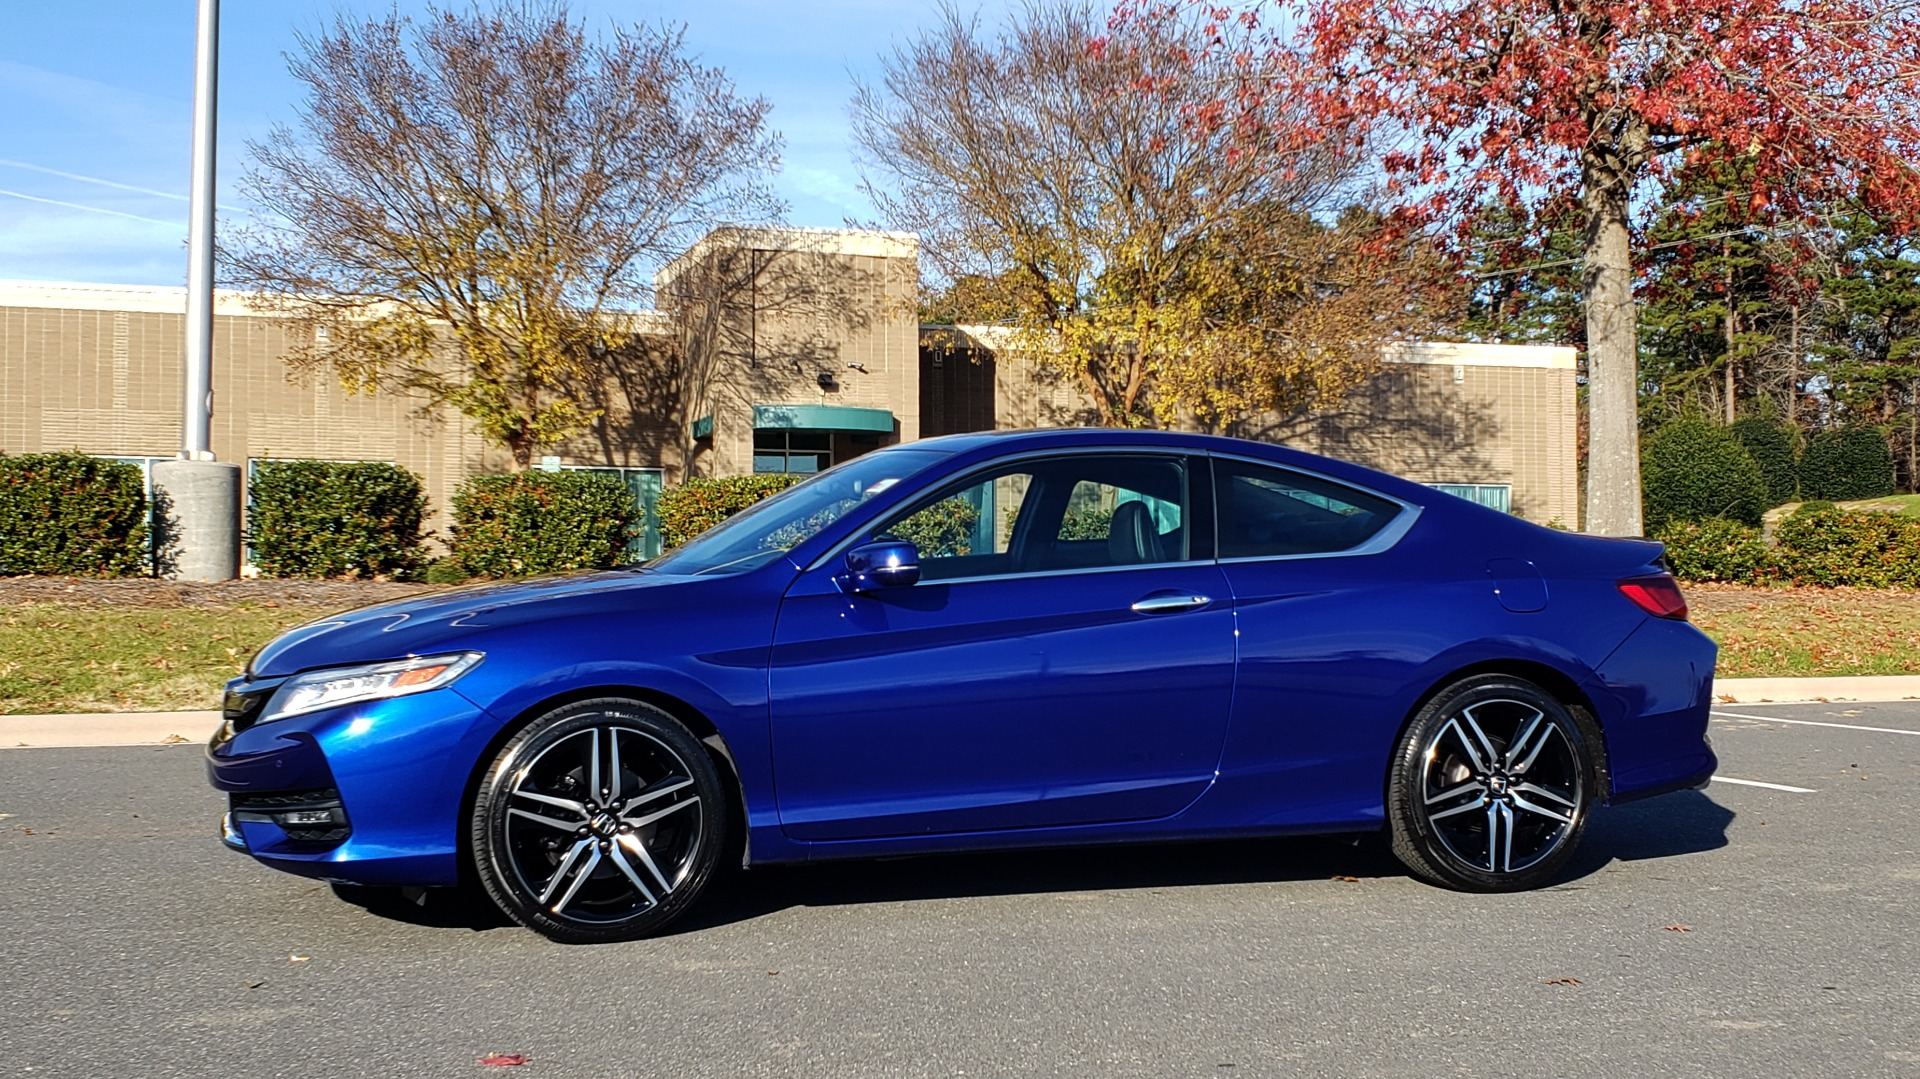 Used 2017 Honda ACCORD COUPE TOURING V6 / 2-DR / NAV / SUNROOF / LANEWATCH / CMBS for sale Sold at Formula Imports in Charlotte NC 28227 3